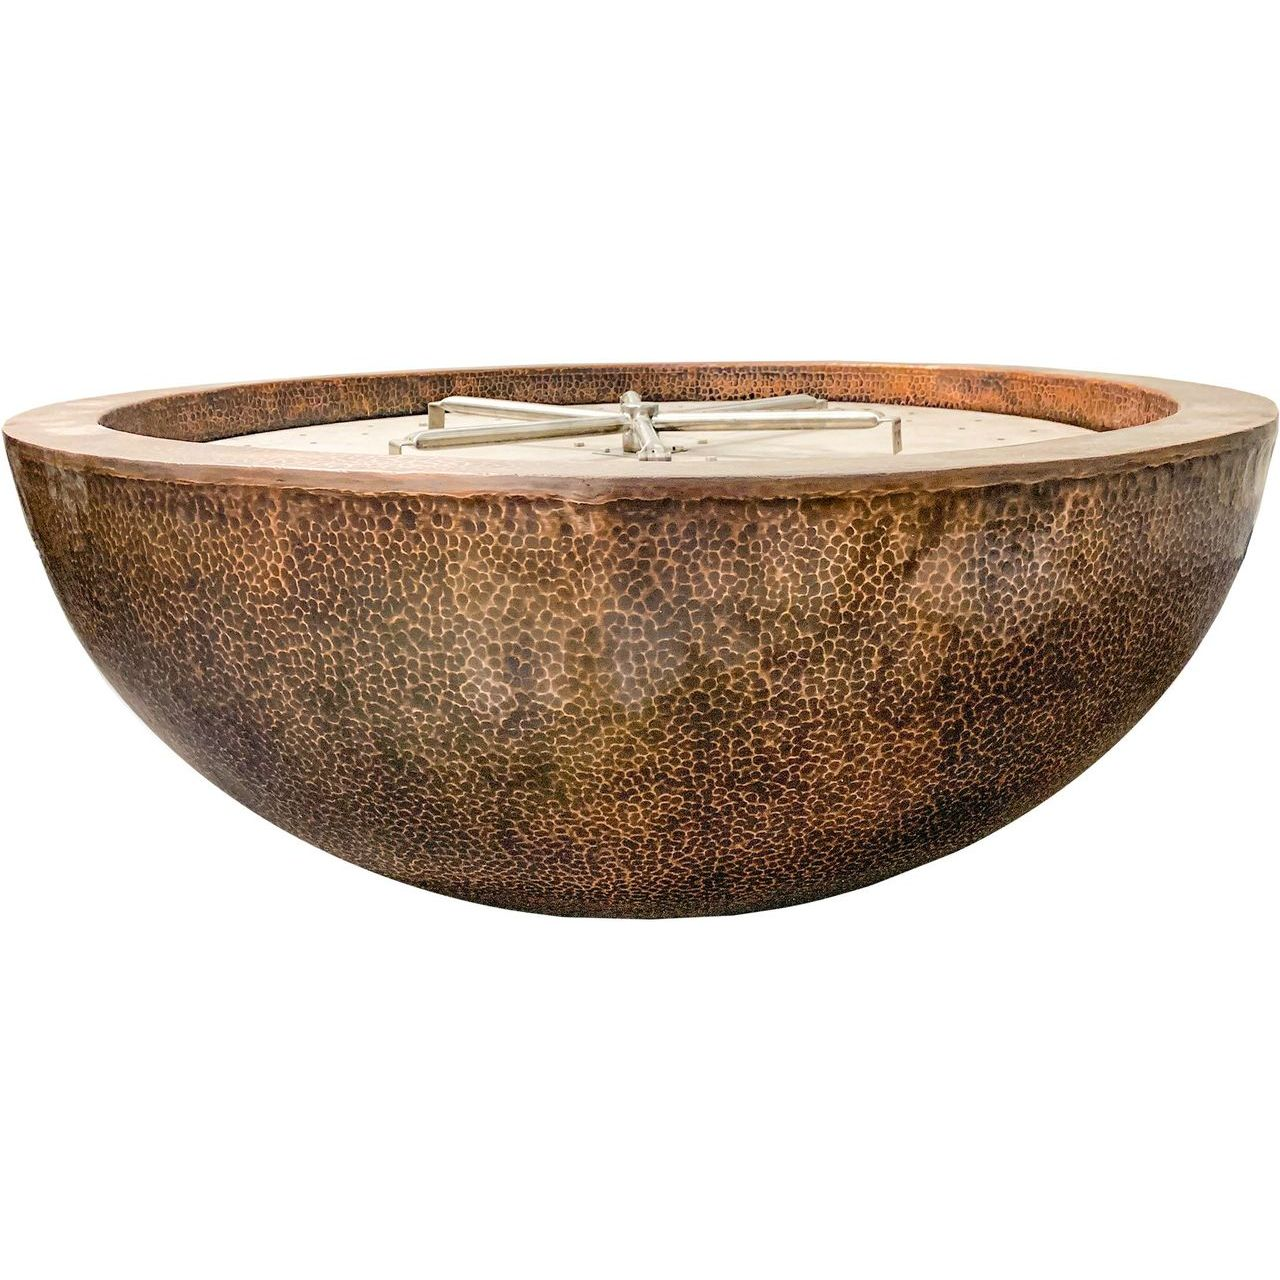 Prism Hardscapes Moderno 4 Fire Bowl in Copper - NG